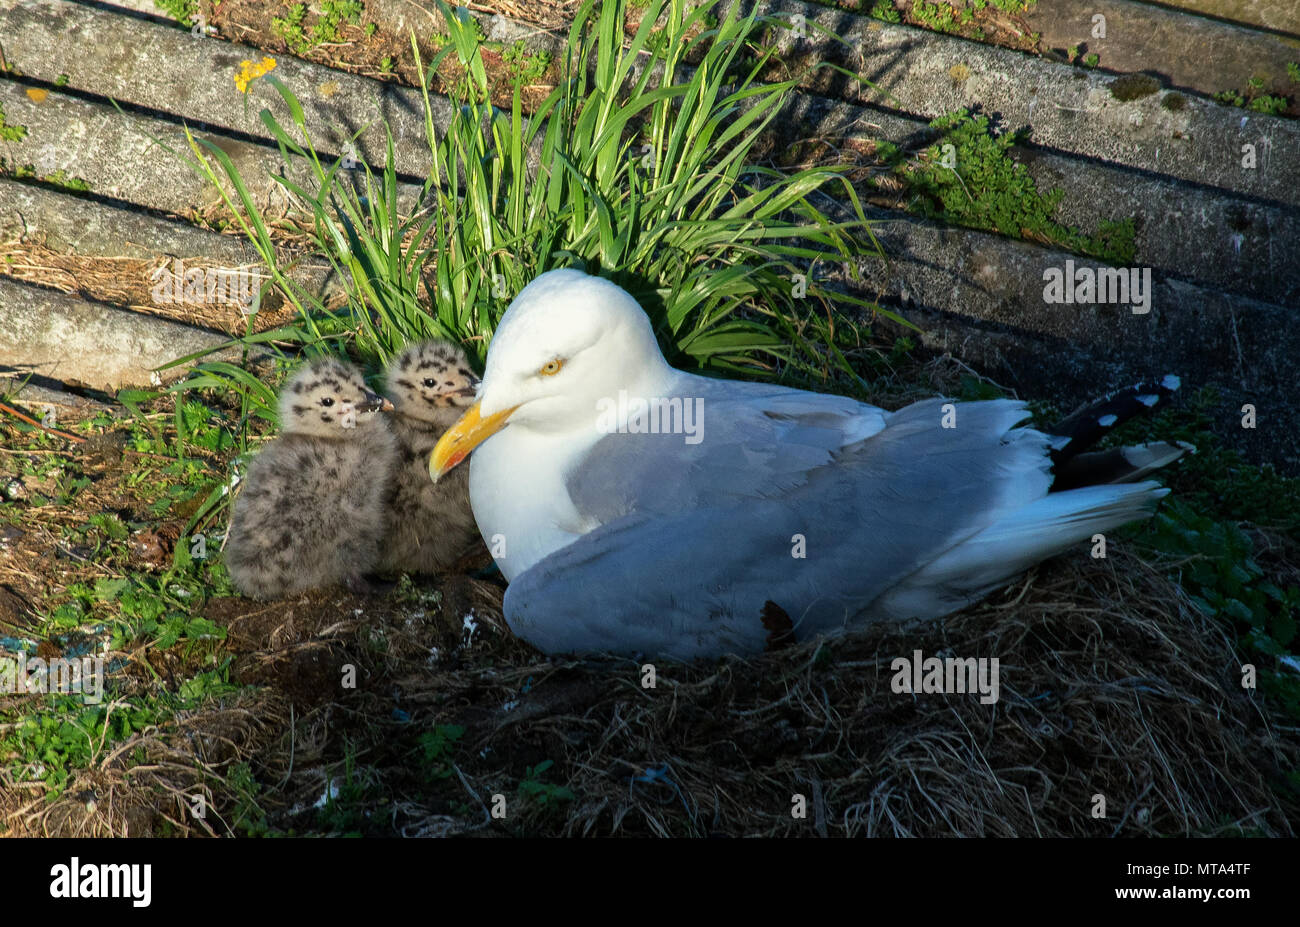 Seagull and Chicks in Nest, Newlyn, Cornwall UK Stock Photo